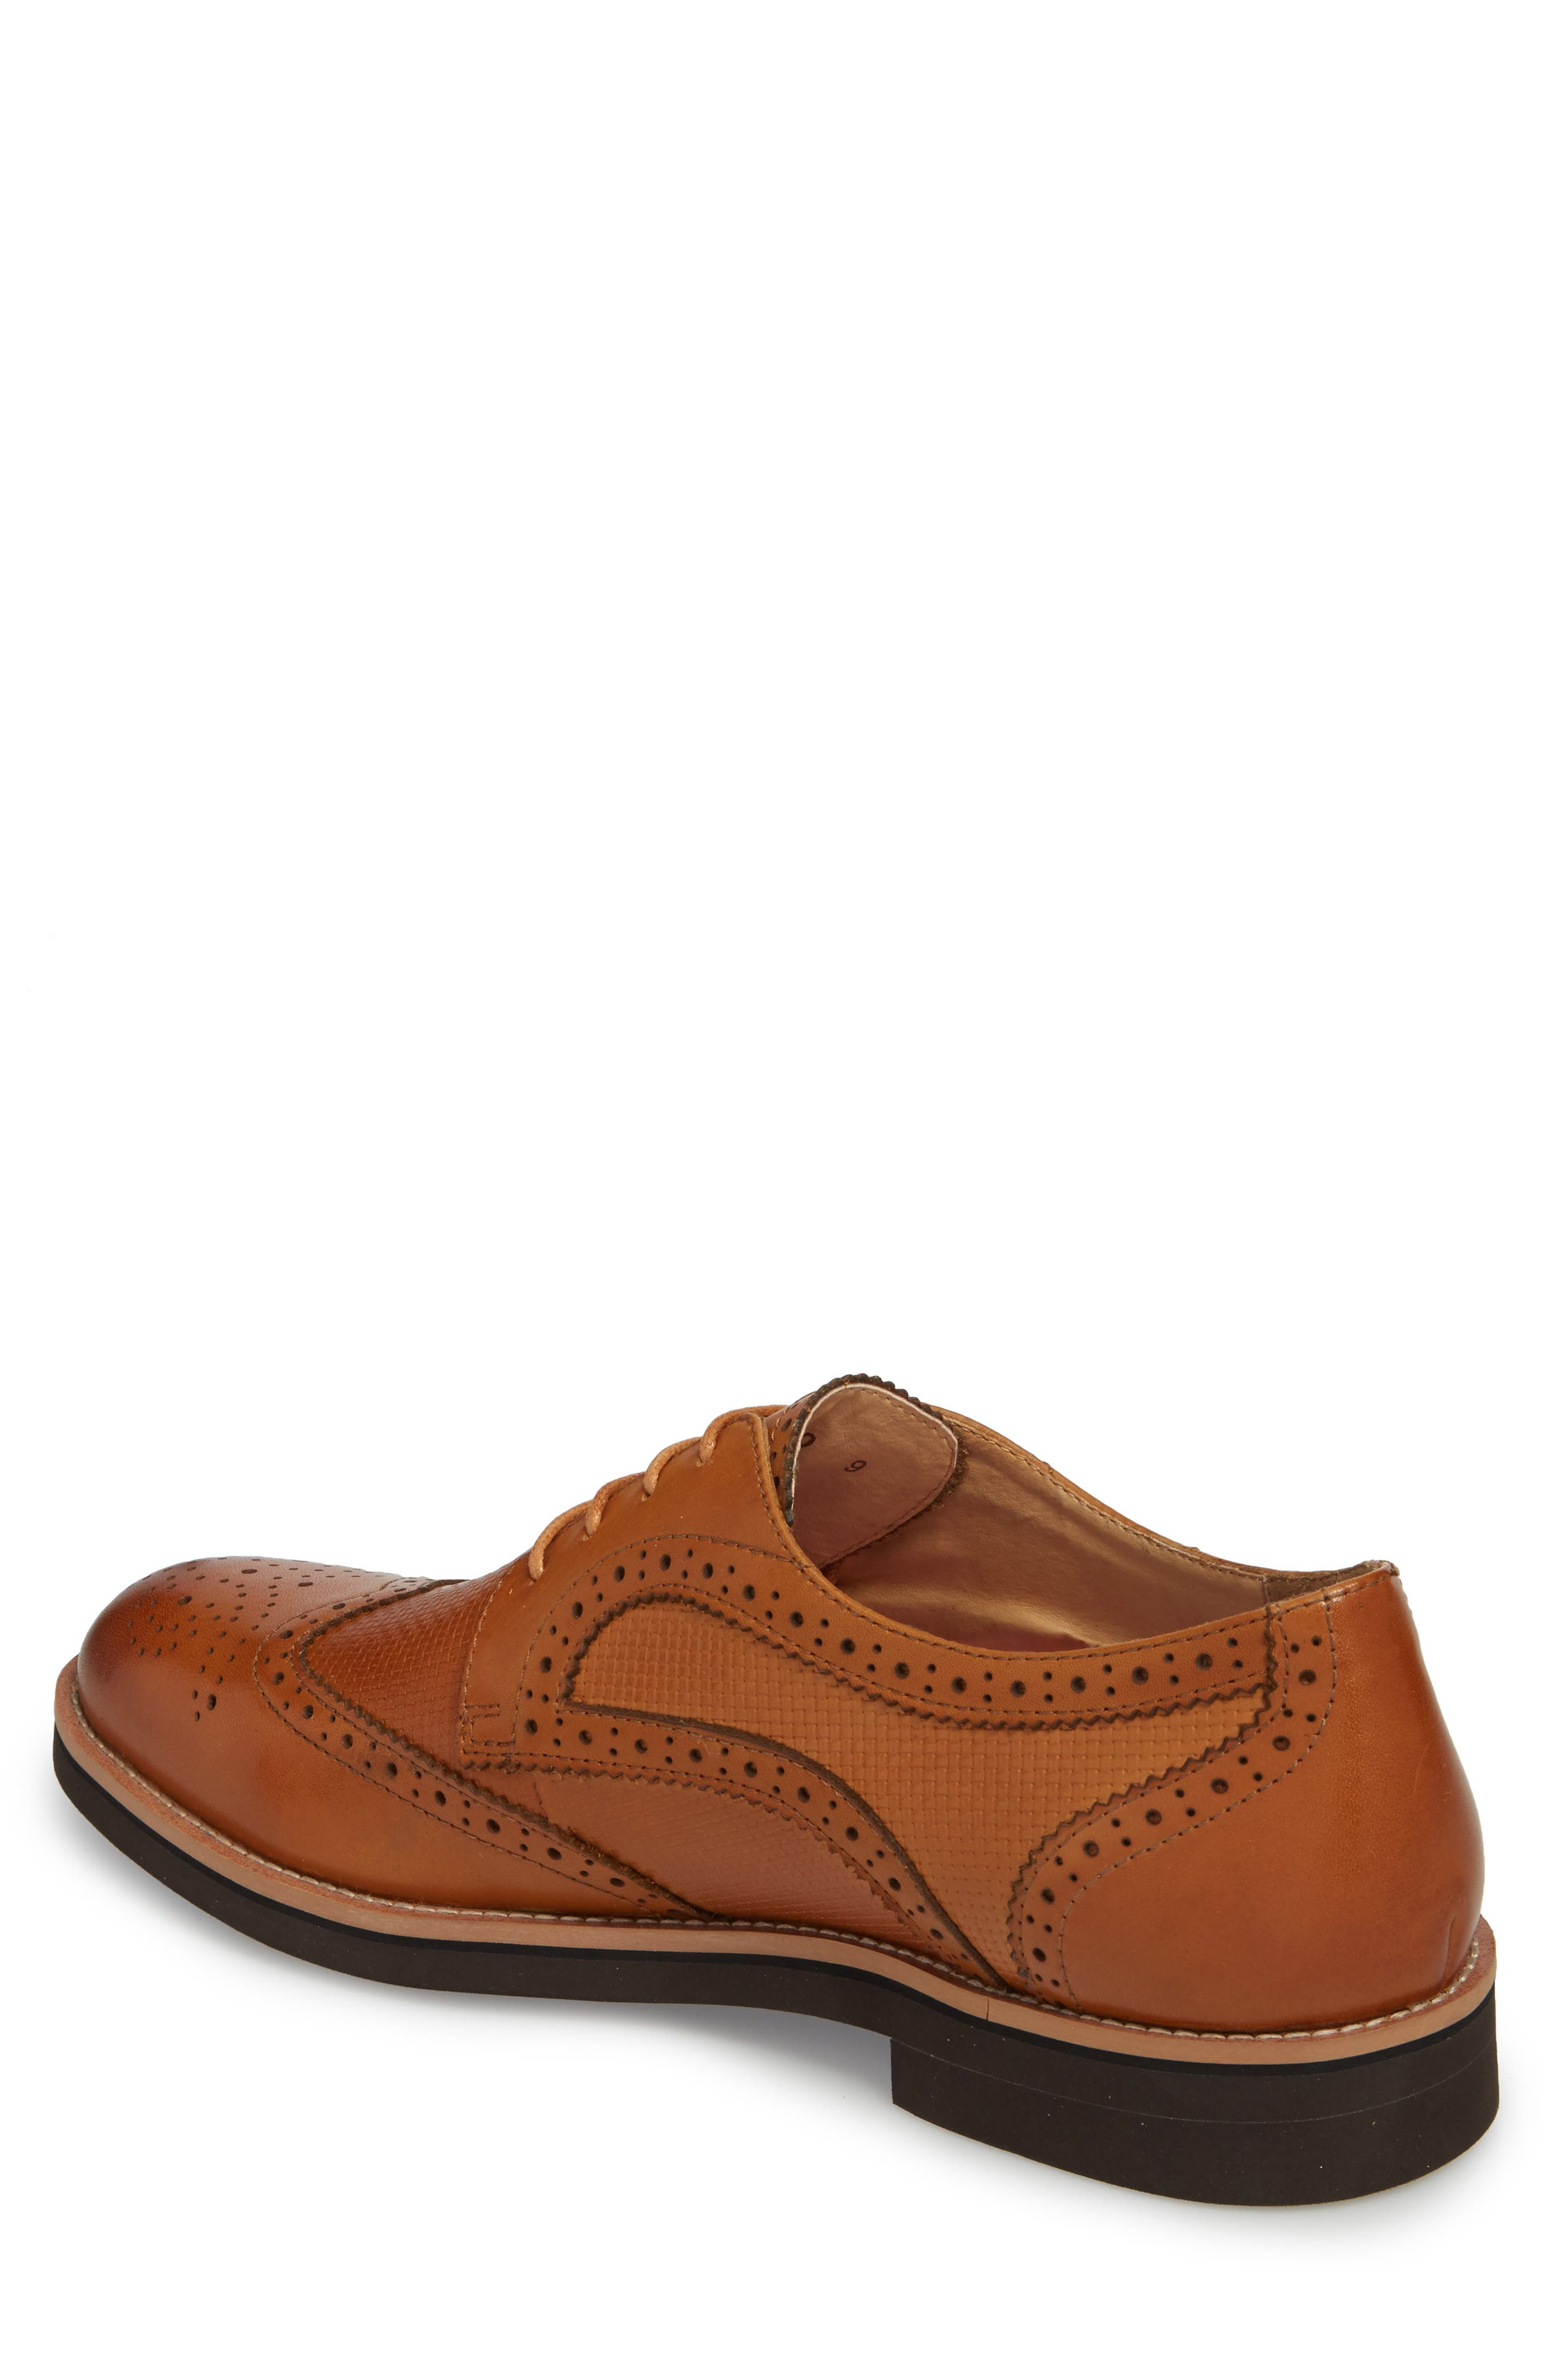 Cleave Embossed Wingtip,                             Alternate thumbnail 2, color,                             Cognac Leather